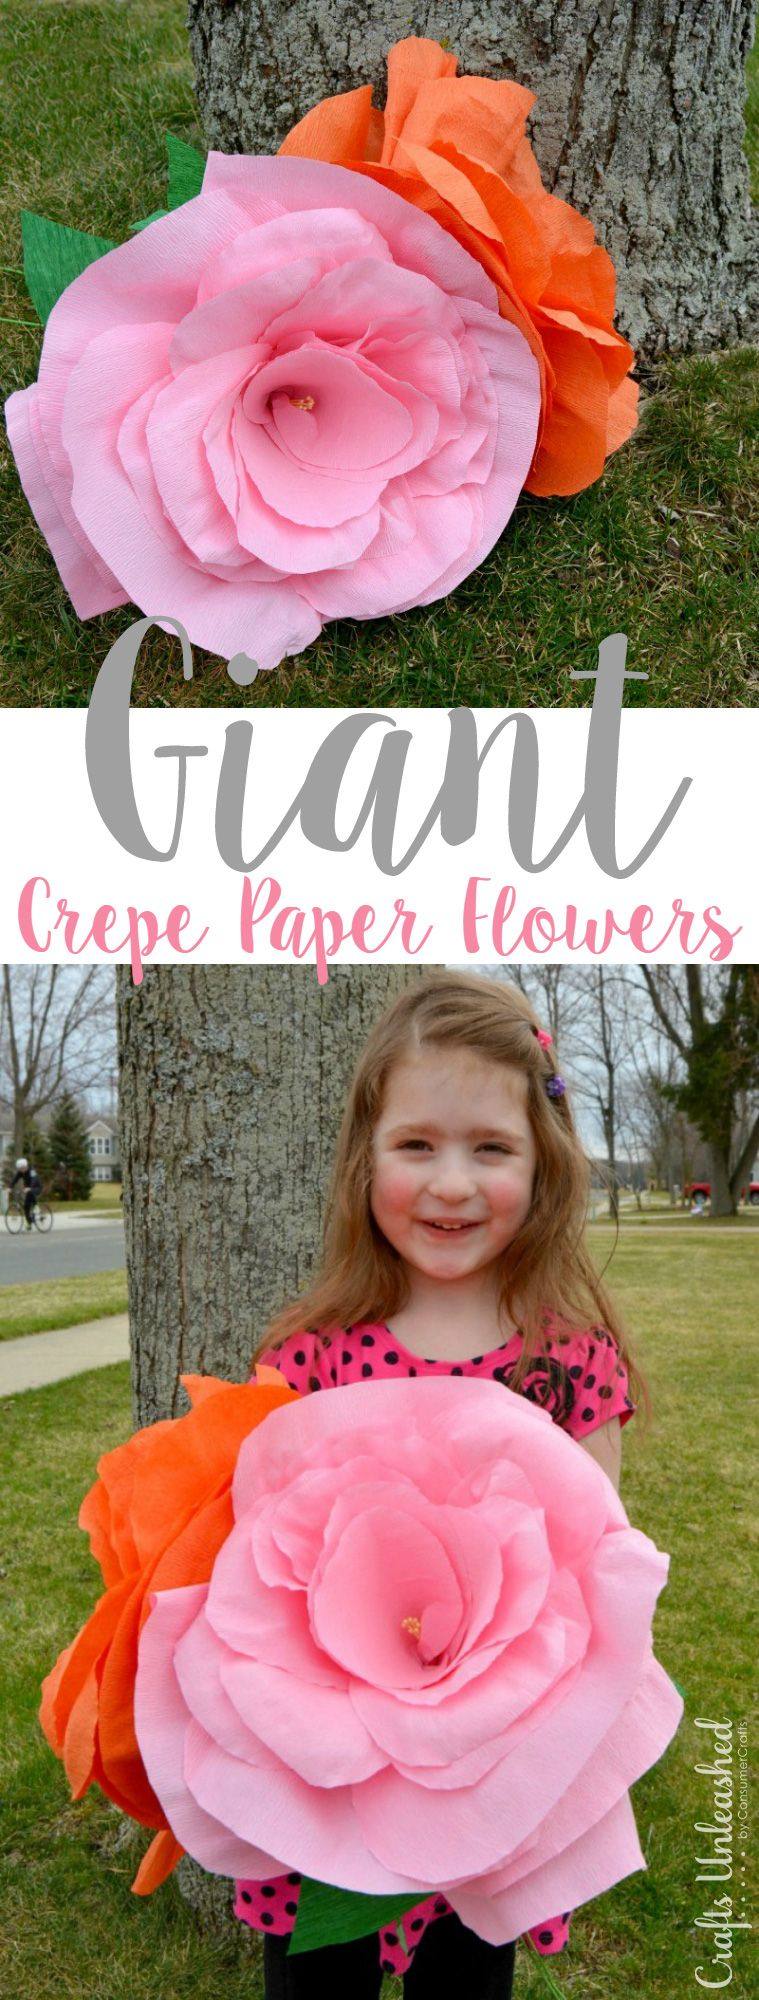 Crepe Paper Flowers Tutorial Giant Sized Crafts Unleashed